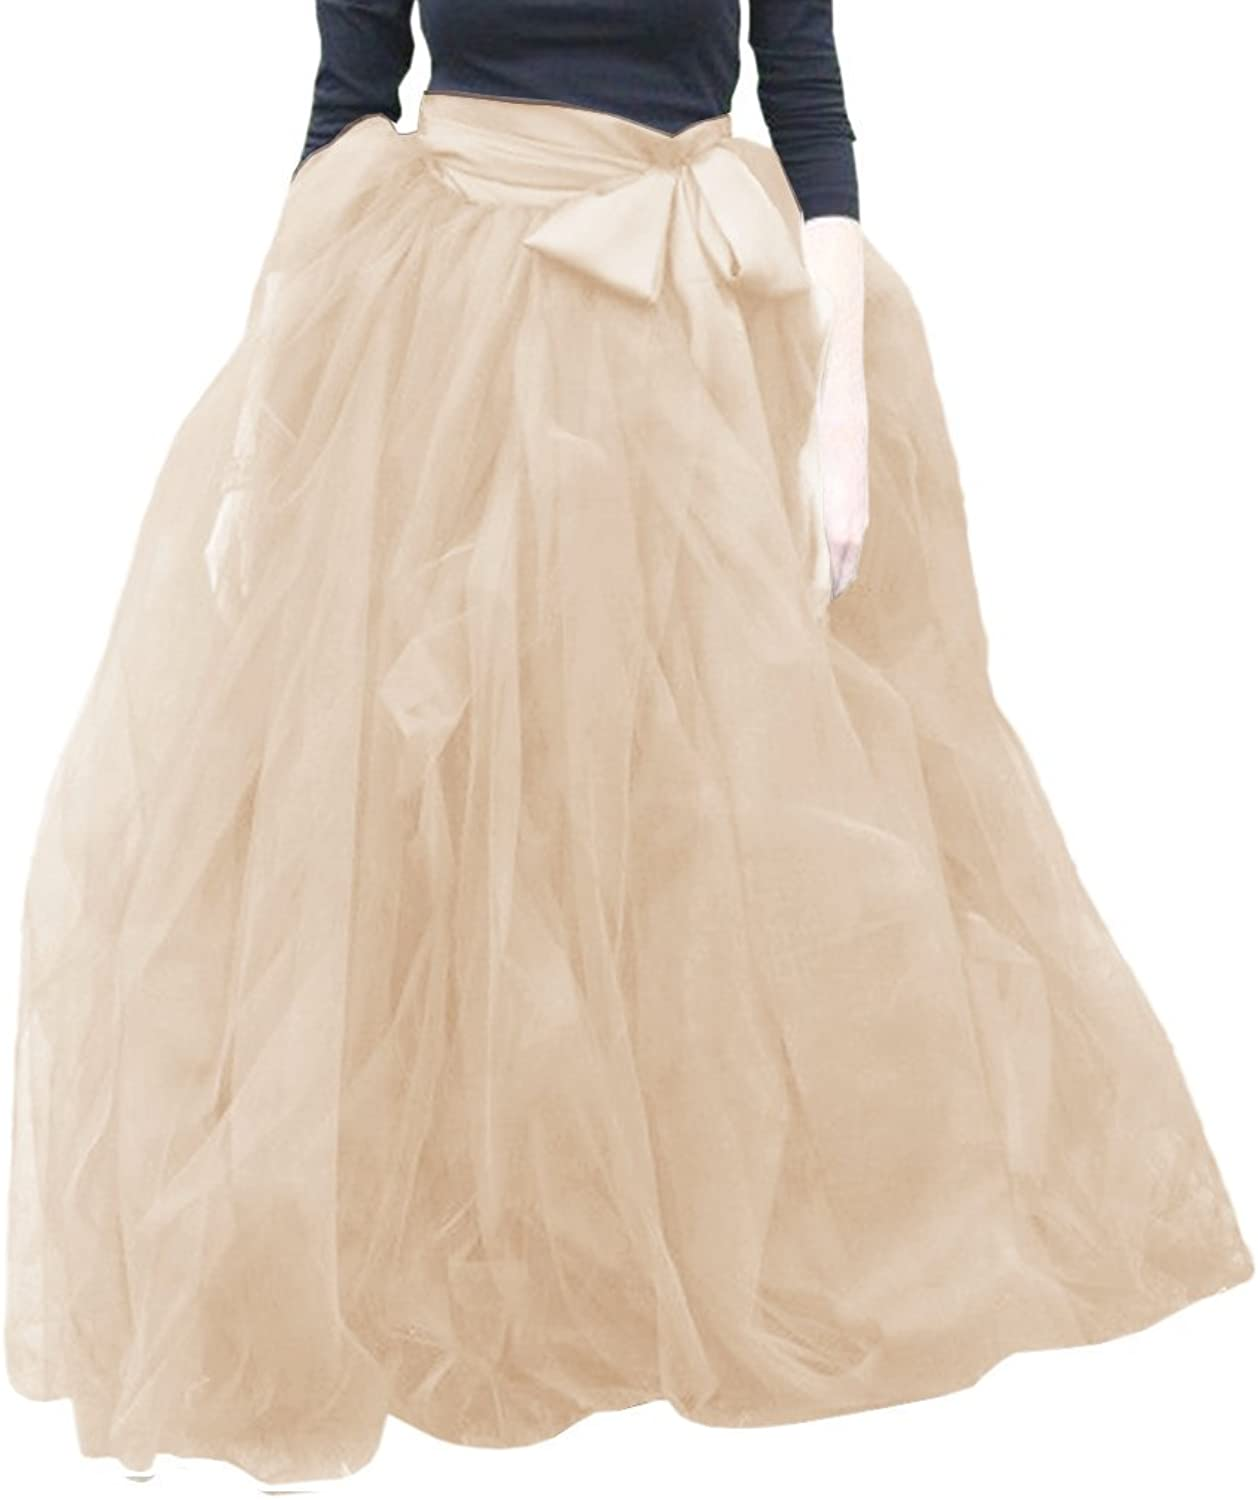 My Super Star Women's Skirts Tulle Dresses Wedding Party Strips Ruffles Tutu Ball Gown Skirts